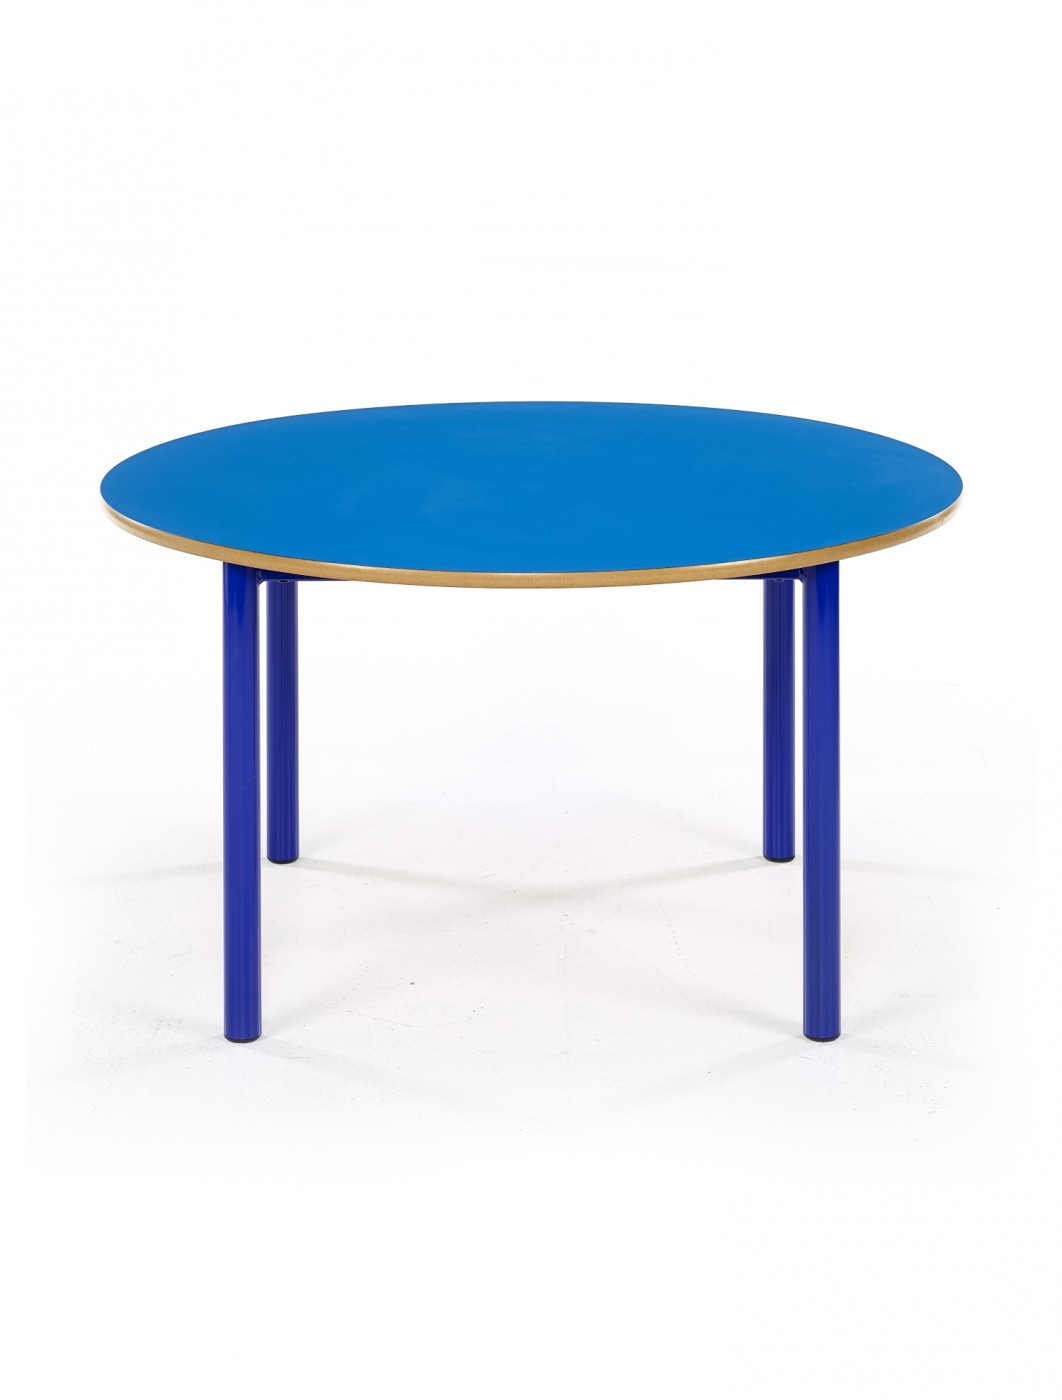 Incroyable Premium Nursery Tables   1100mm Circular Nursery Tables NURS 11C MD    Enlarged View